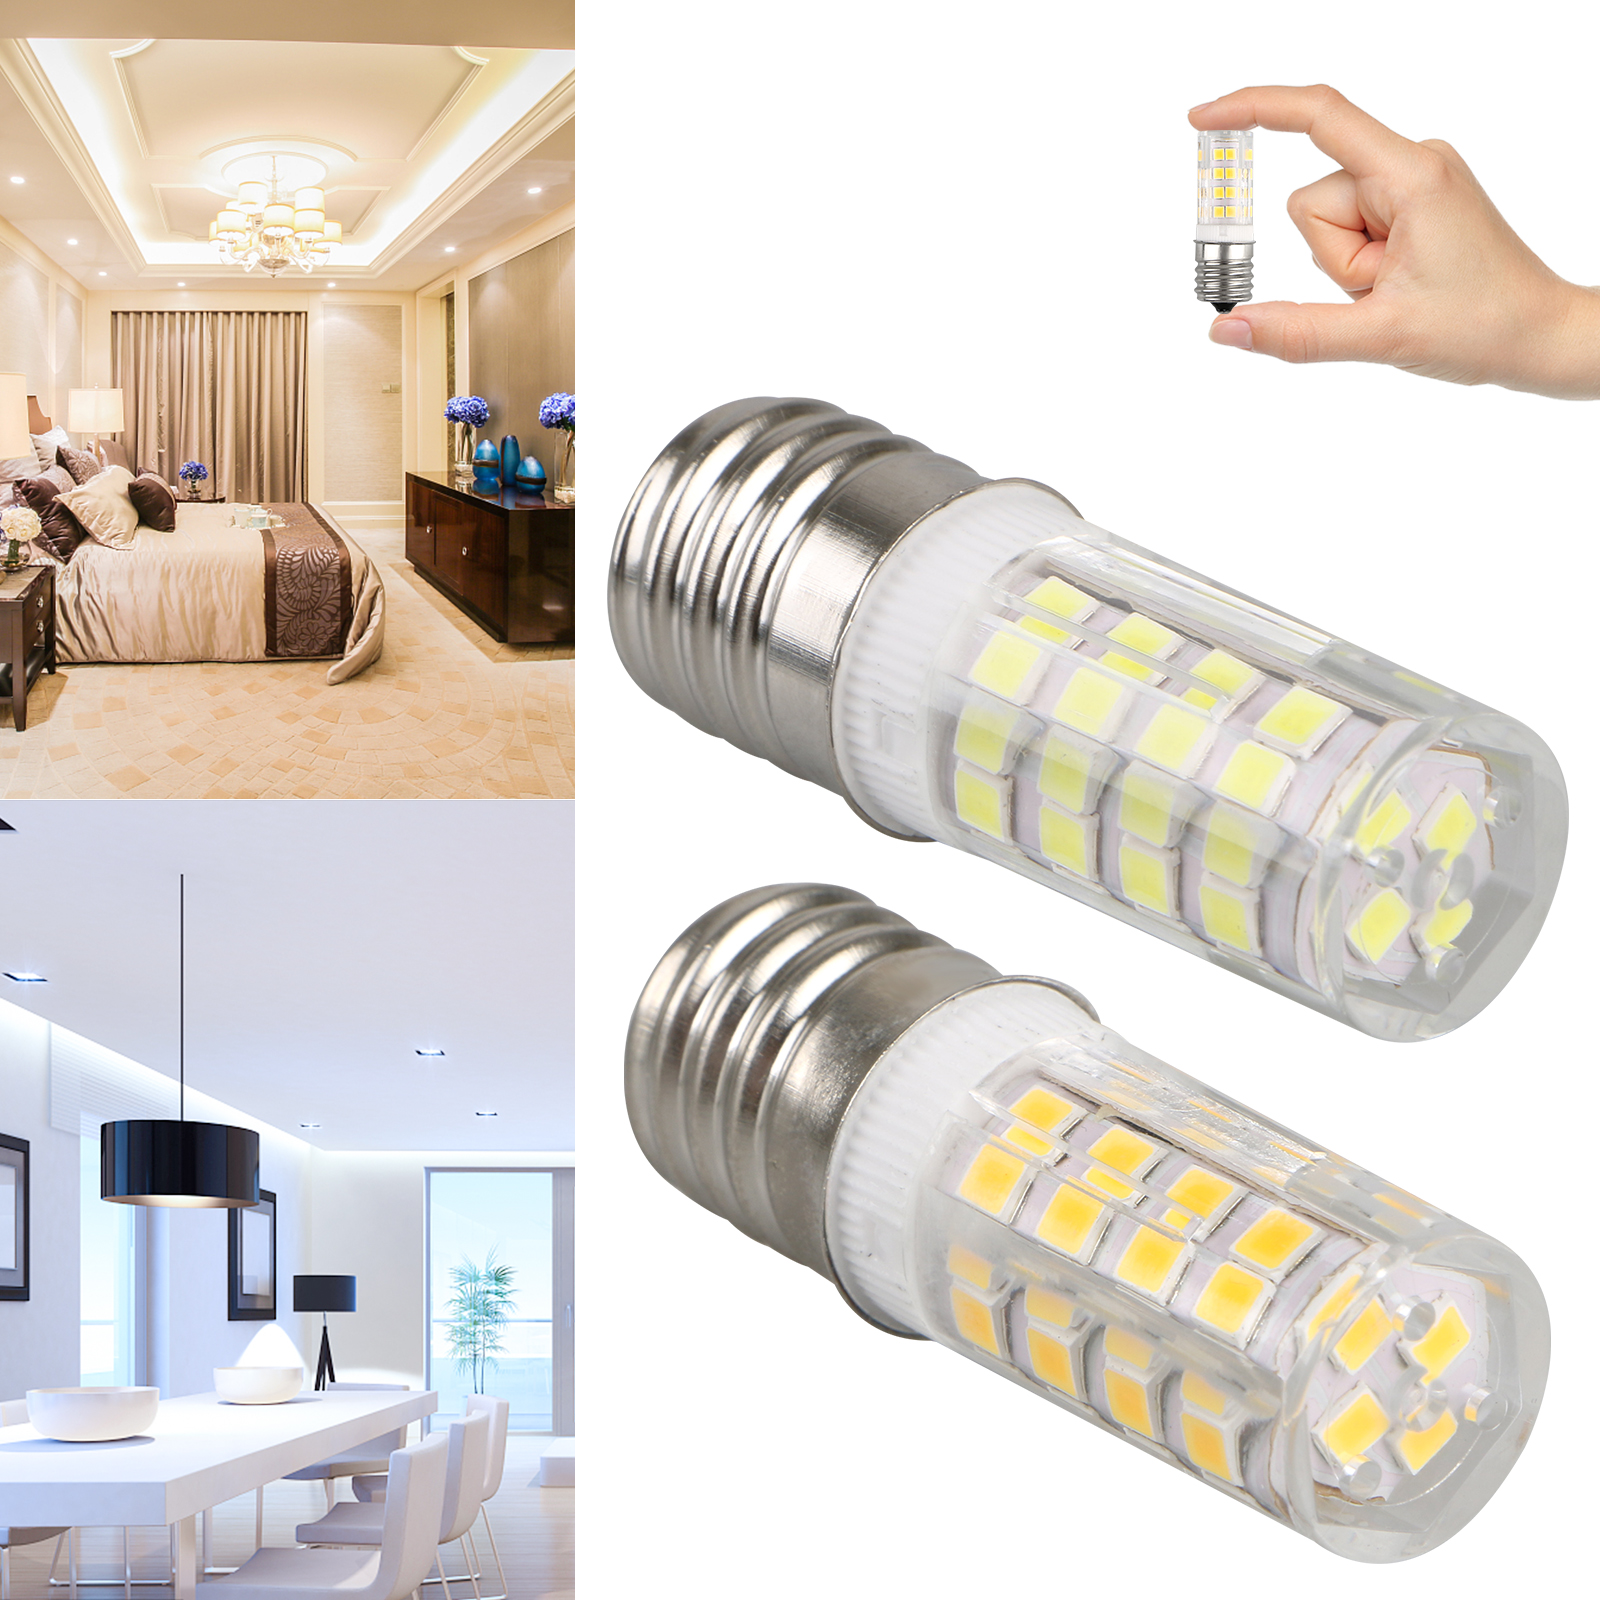 1-2PCS-E17-LED-Bulb-Microwave-Oven-Light-Dimmable-4W-Natural-White-6000K-Light